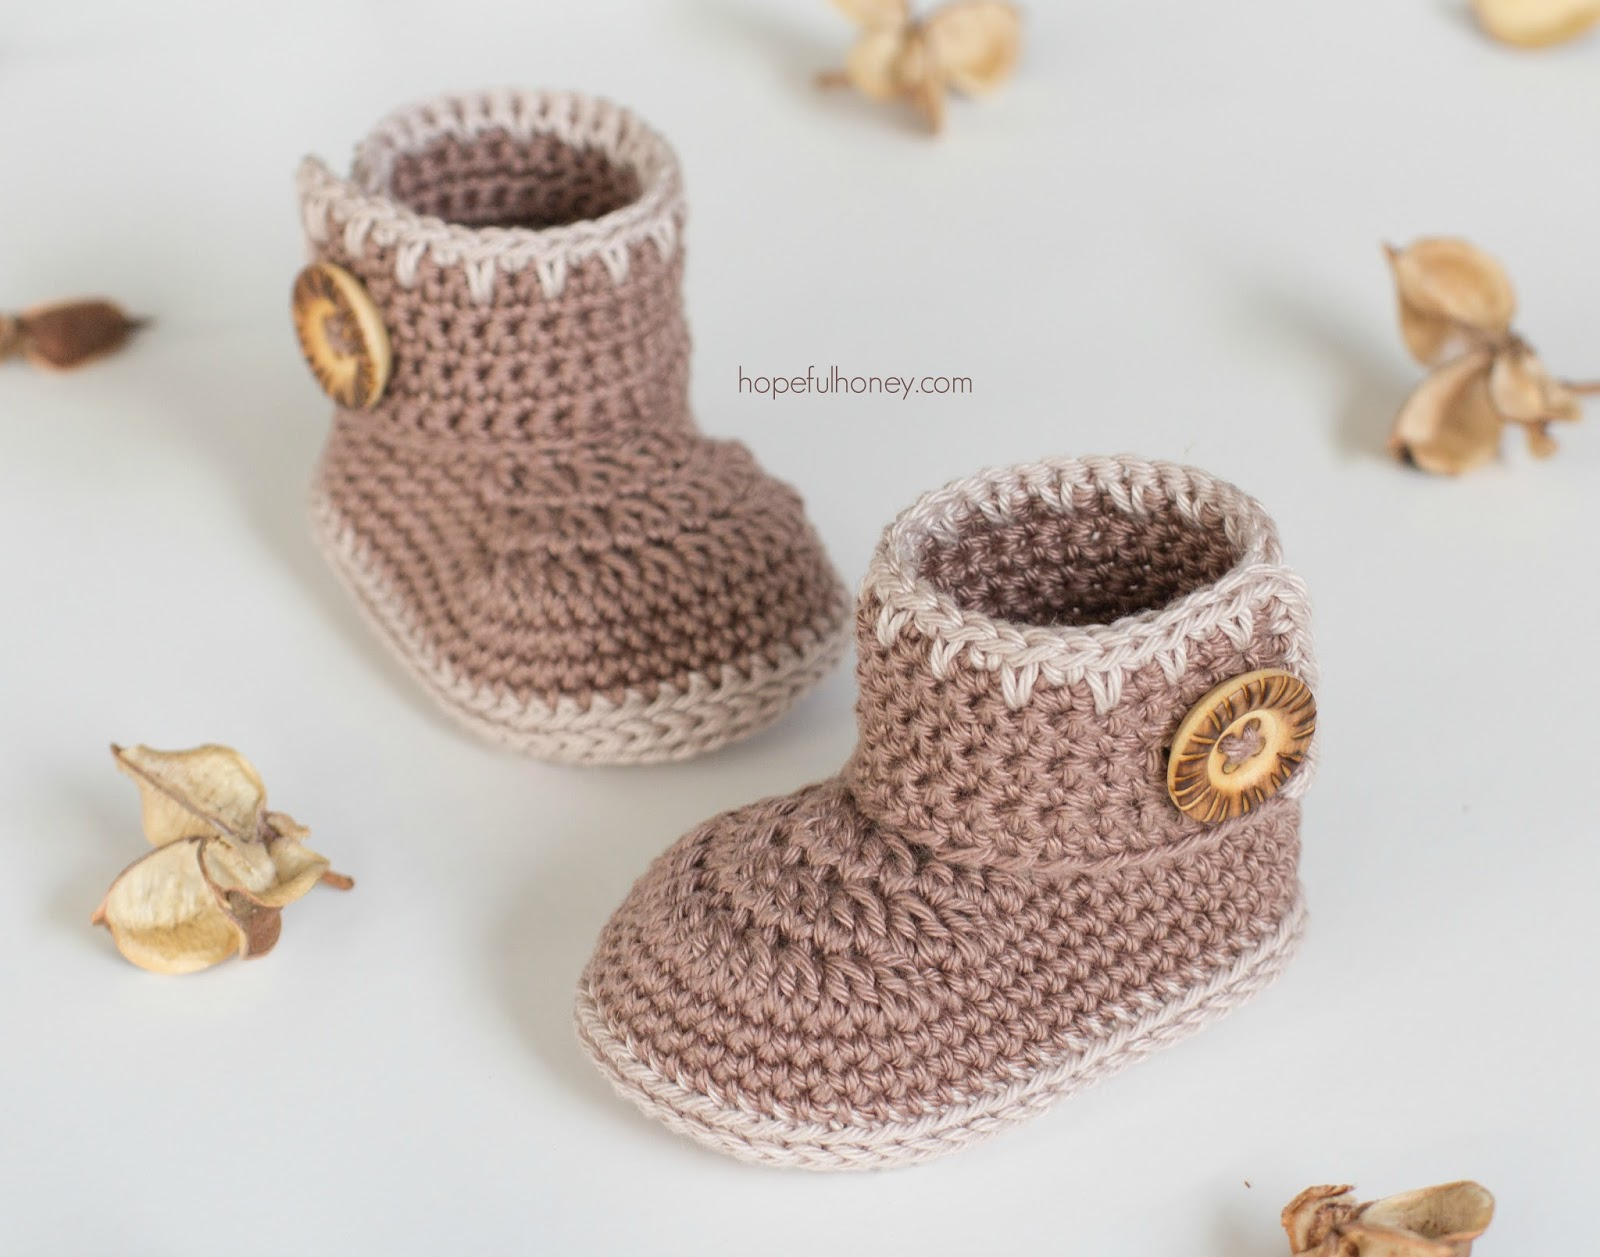 Crochet Baby Ankle Booties Free Pattern : Hopeful Honey Craft, Crochet, Create: Cocoa Baby Ankle ...